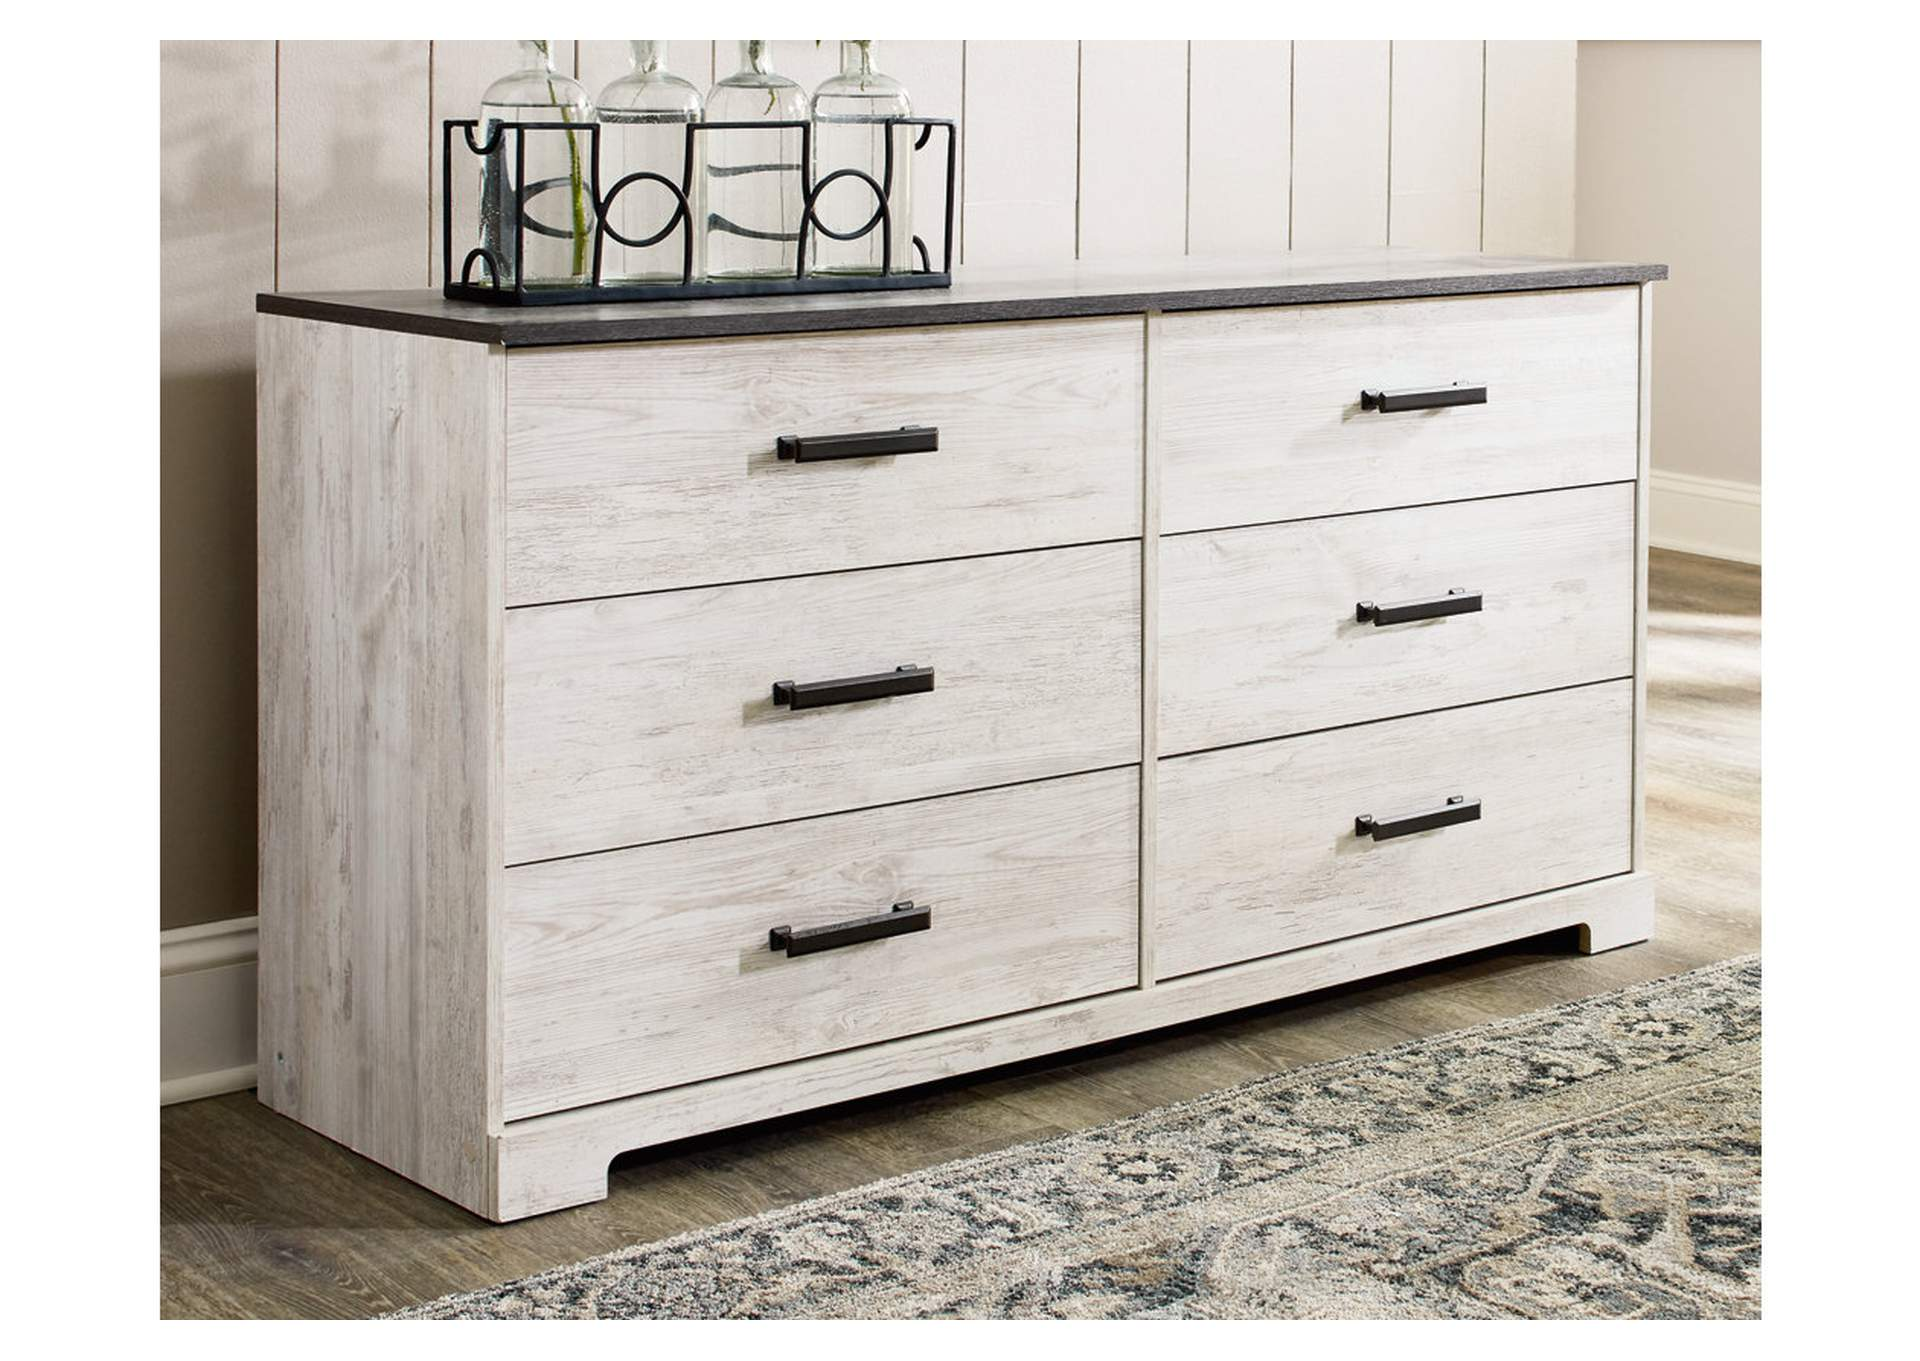 Shawburn Dresser,Direct To Consumer Express